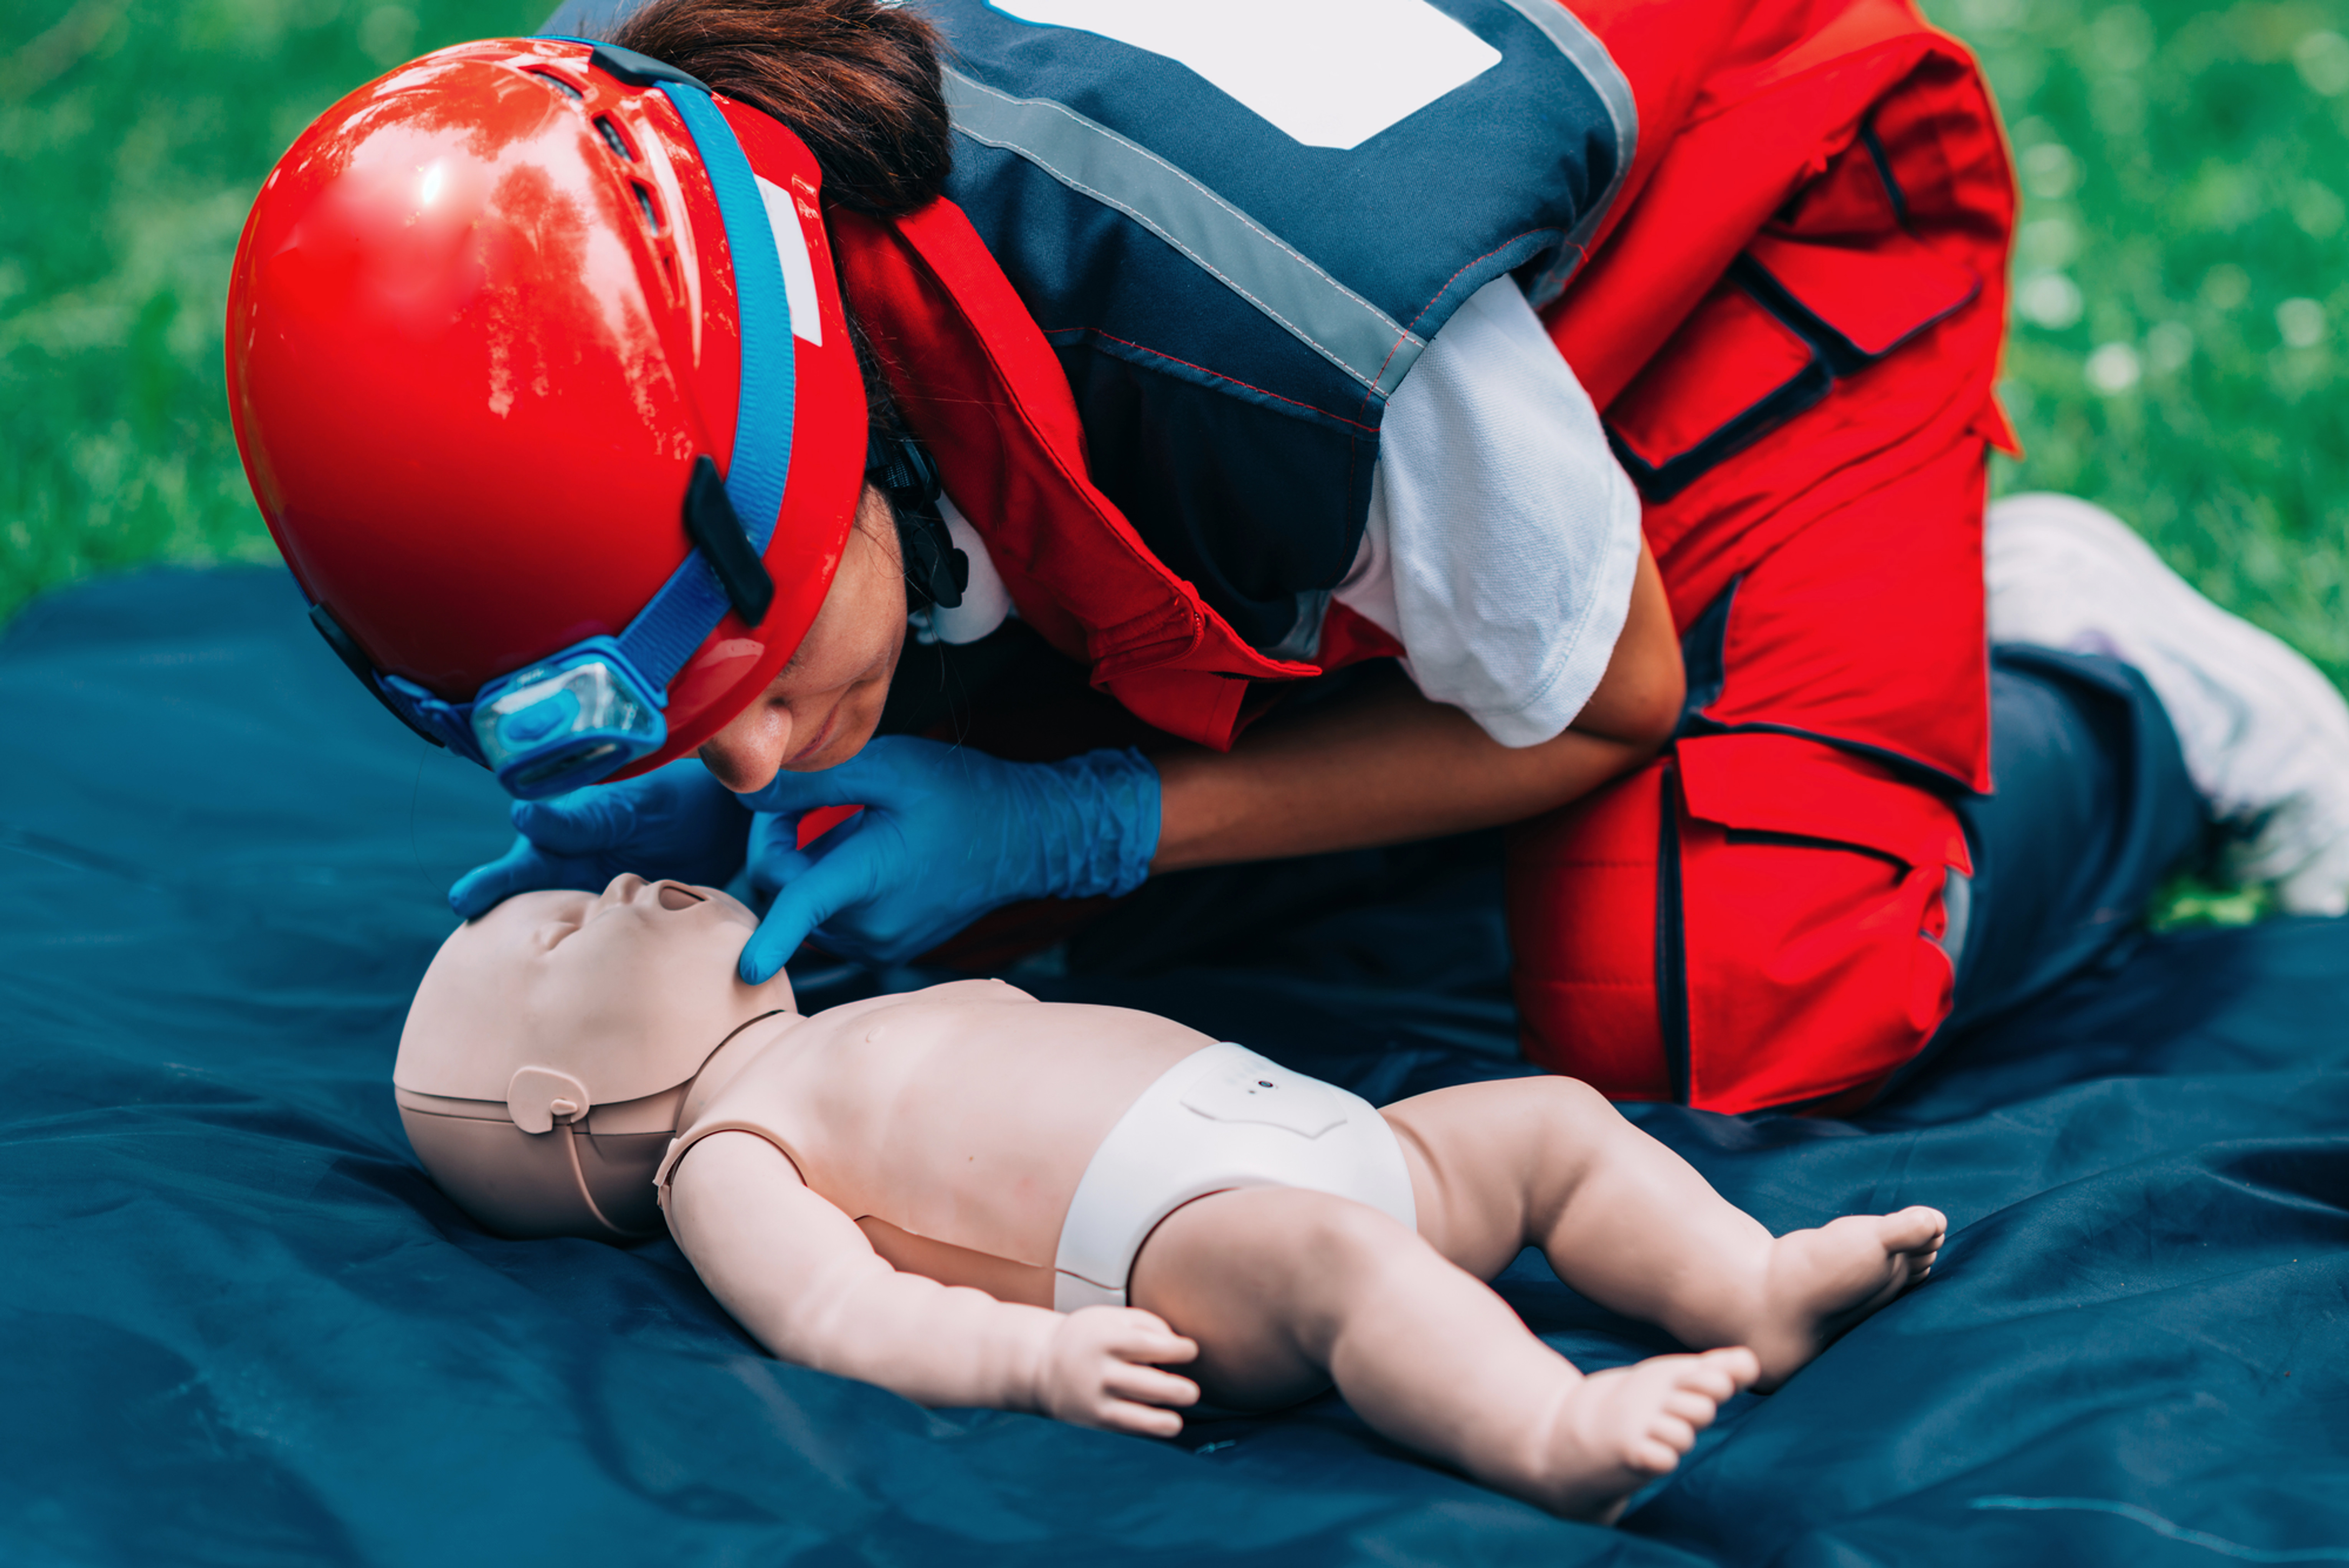 First Aid/CPR AED Training